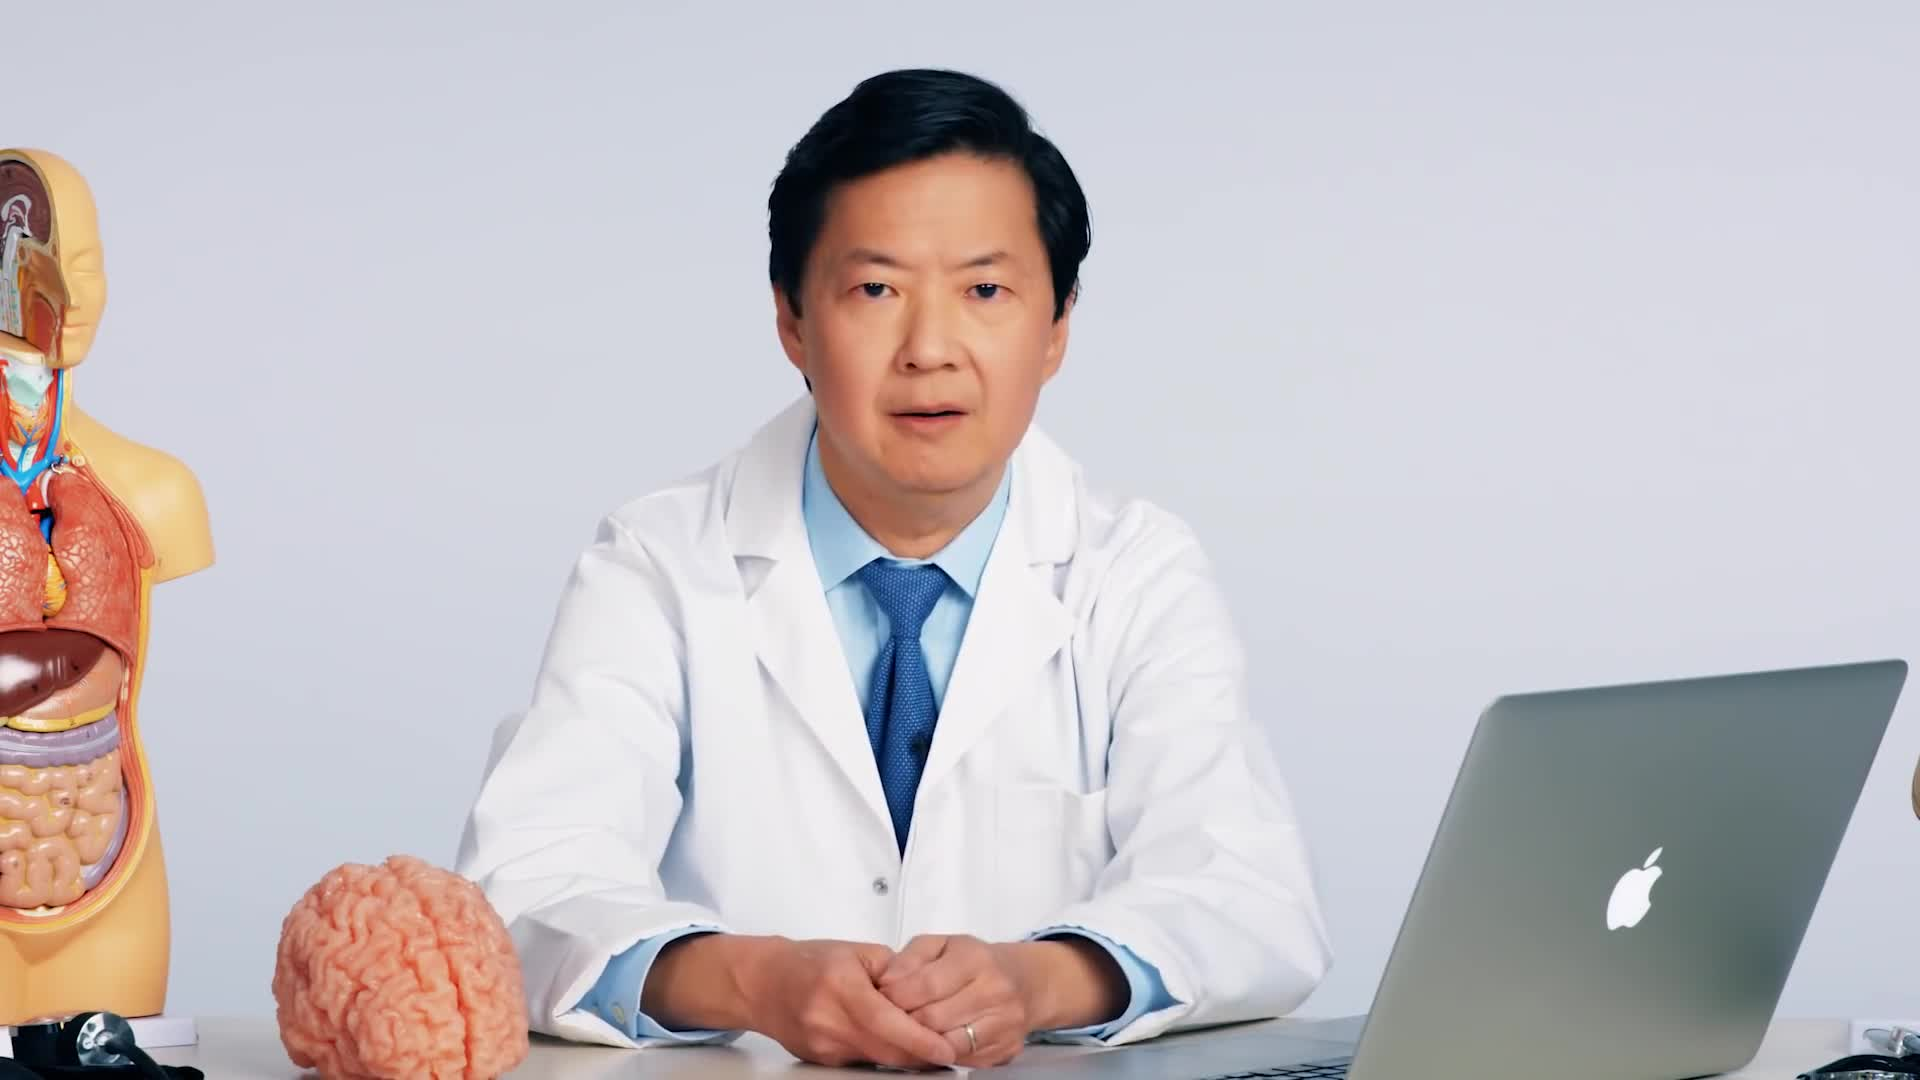 celebs, doctor, dr ken, innovation, ken, ken jeong, ken jeong answer, ken jeong answers, ken jeong doctor, ken jeong funny, ken jeong interview, Ken Jeong Answers More Medical Questions From Twitter | Tech Support | WIRED GIFs